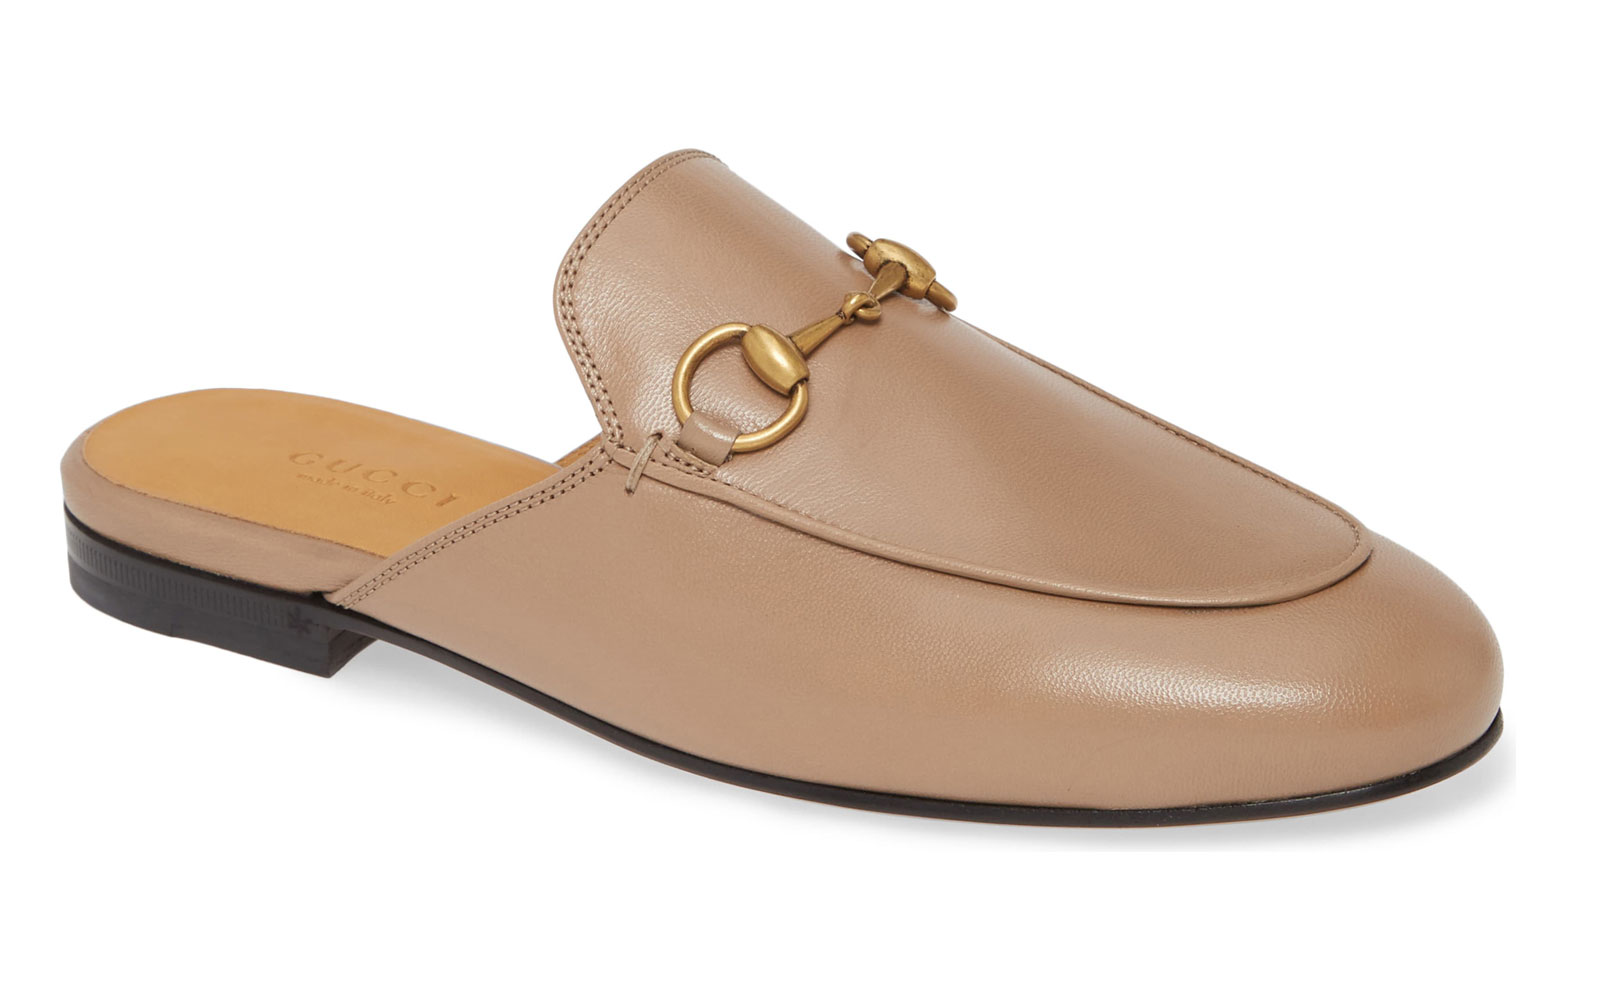 Tan leather mule shoe